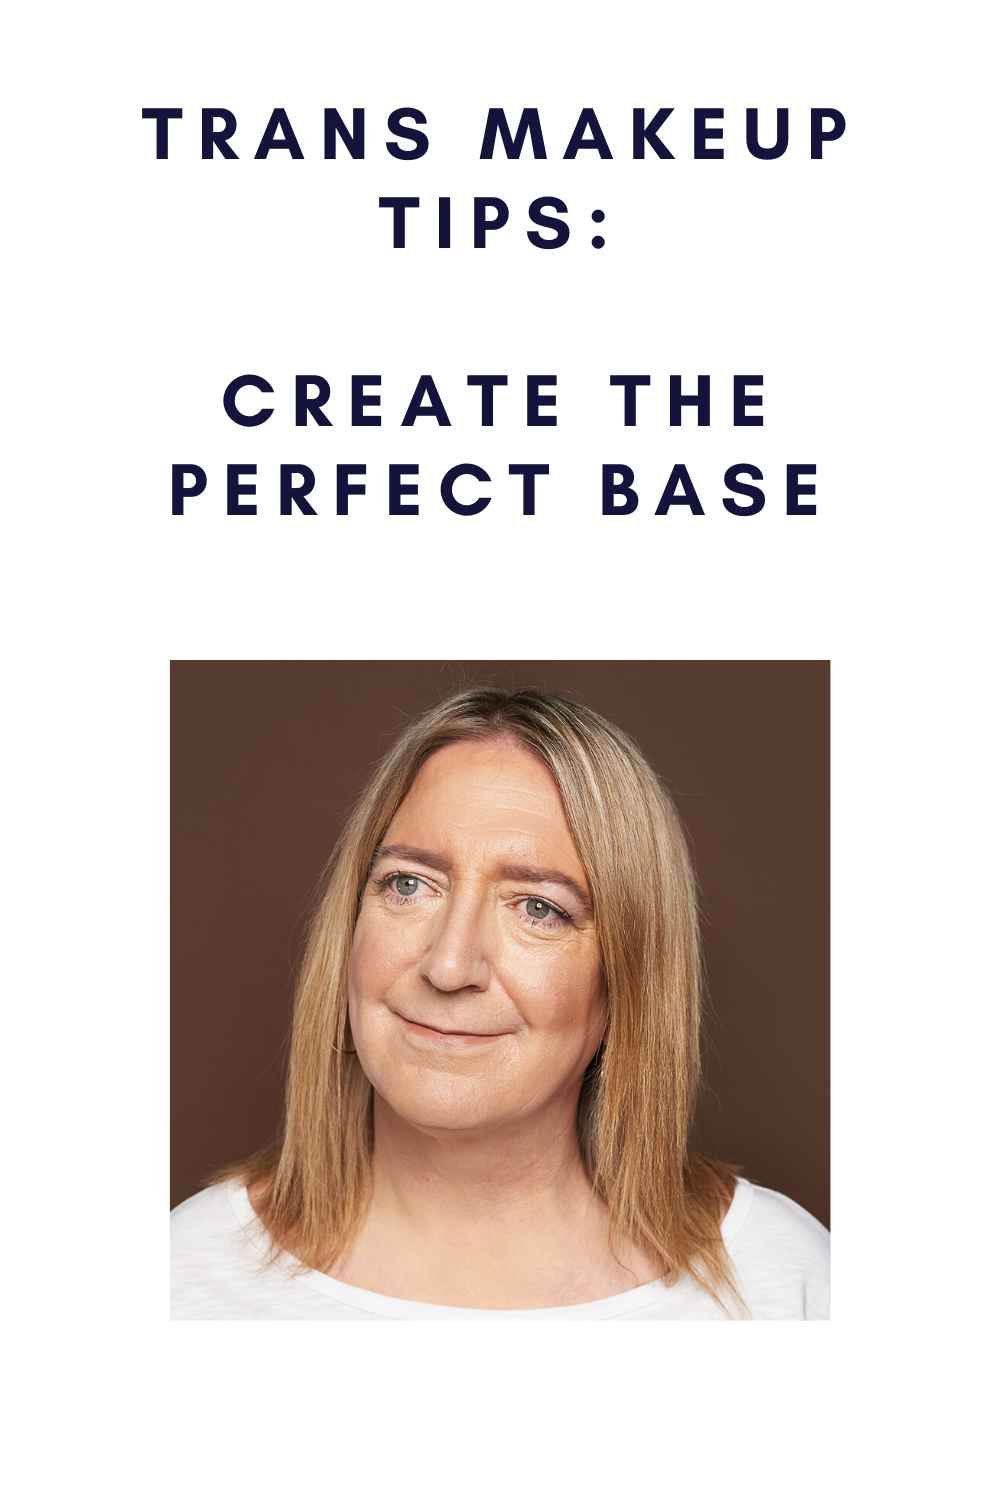 How to Create The Perfect Base